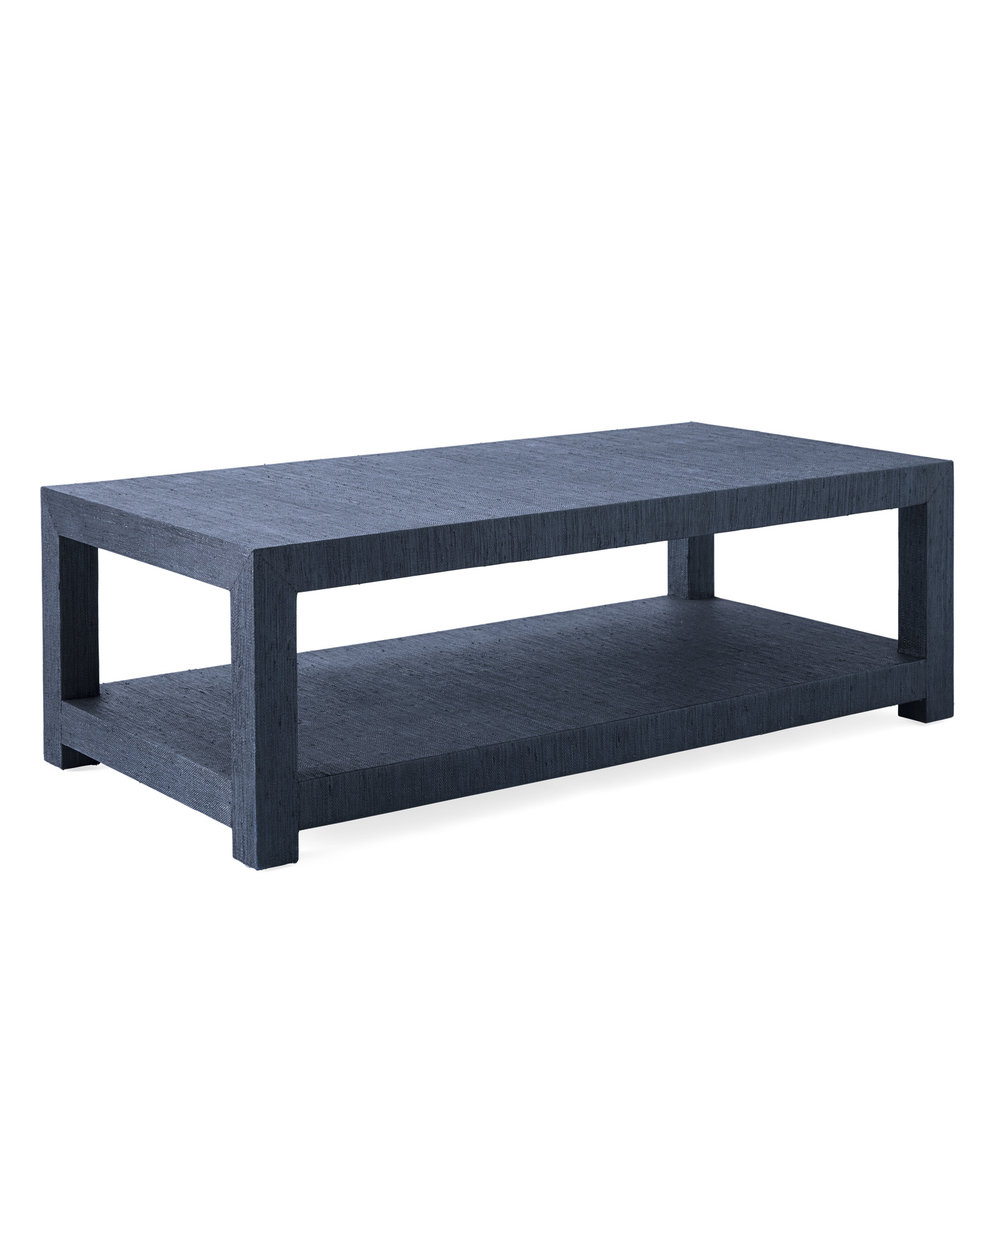 Furn_Blake_Coffee_Table_Indigo_Angle_MV_0696_Crop_SH.jpg